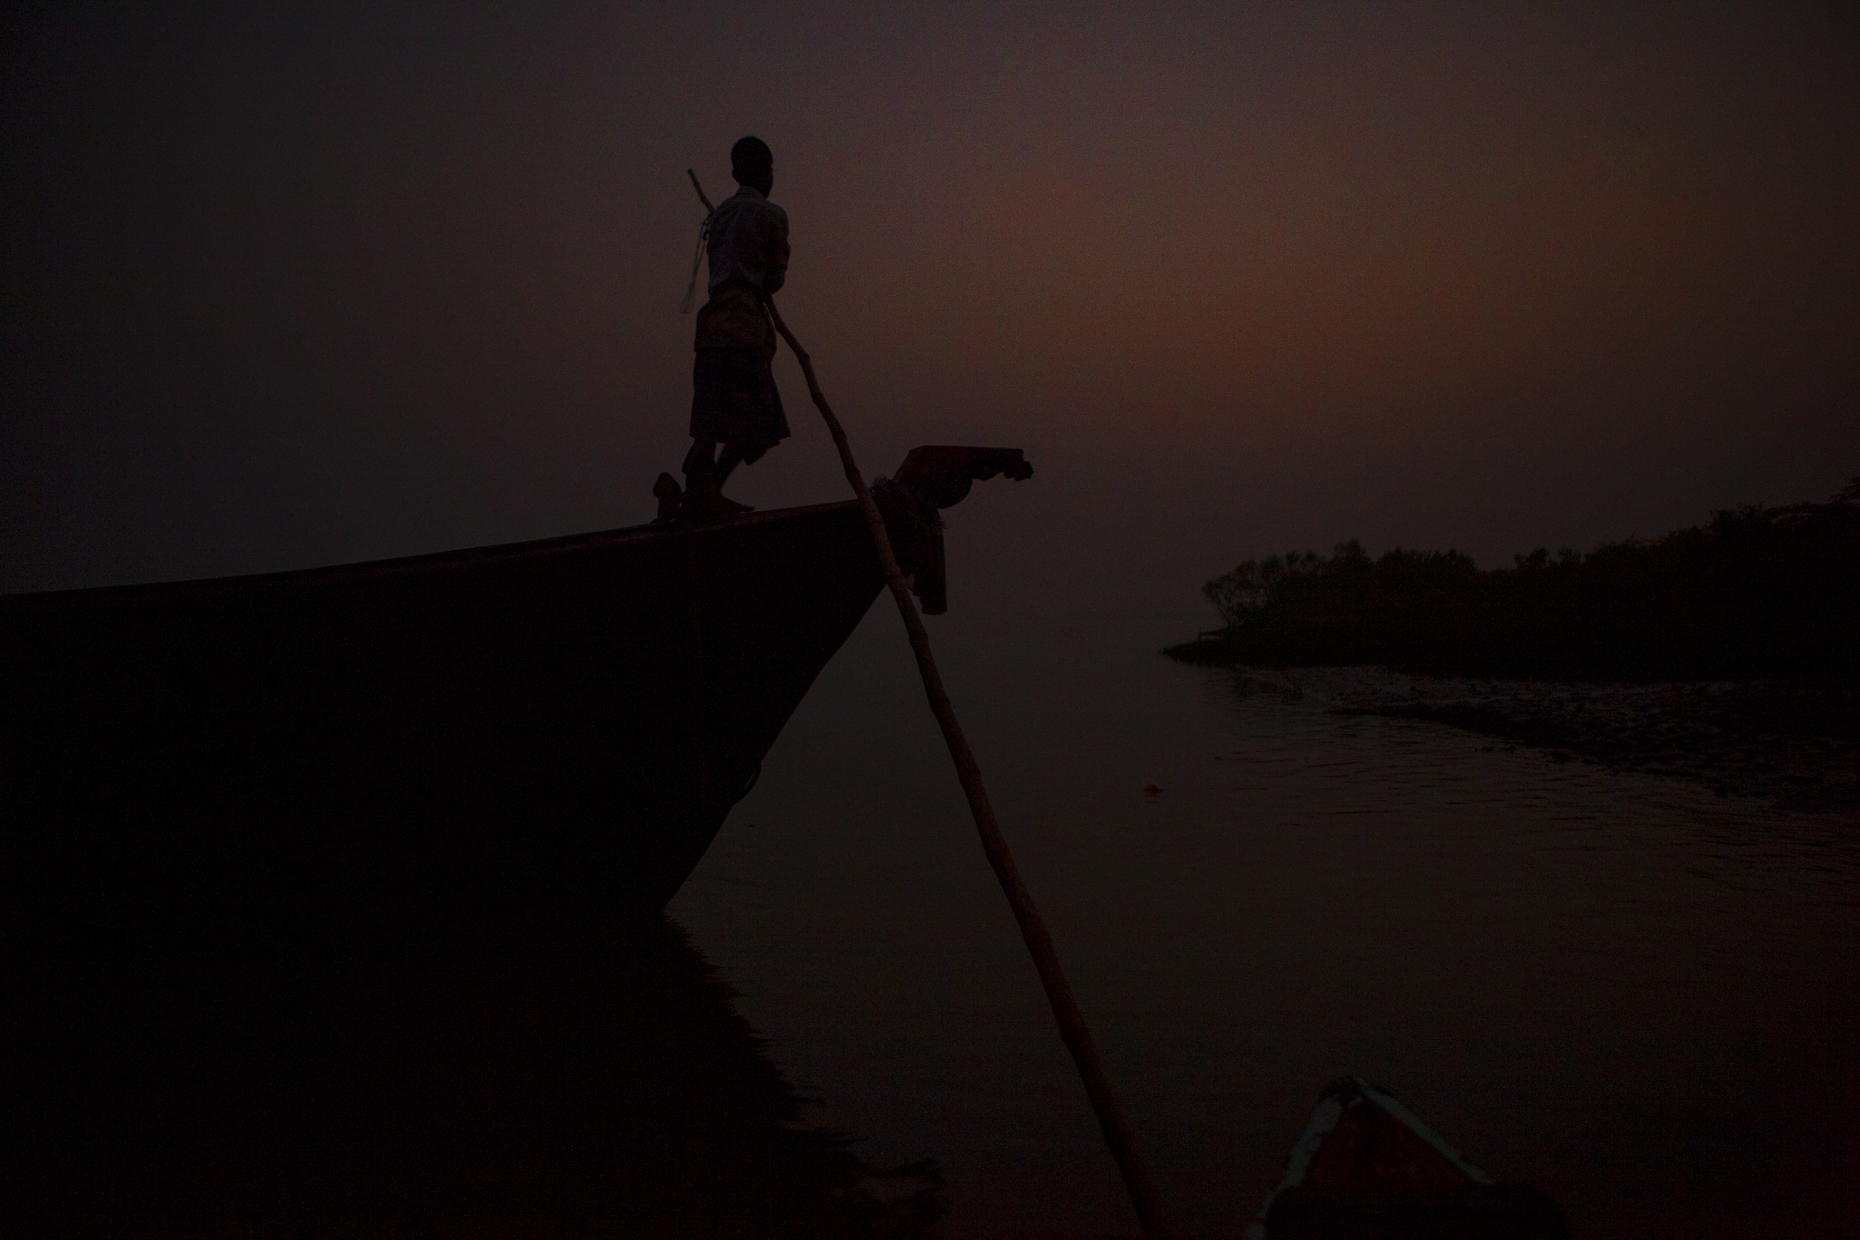 Fisherman silhouetted at dusk